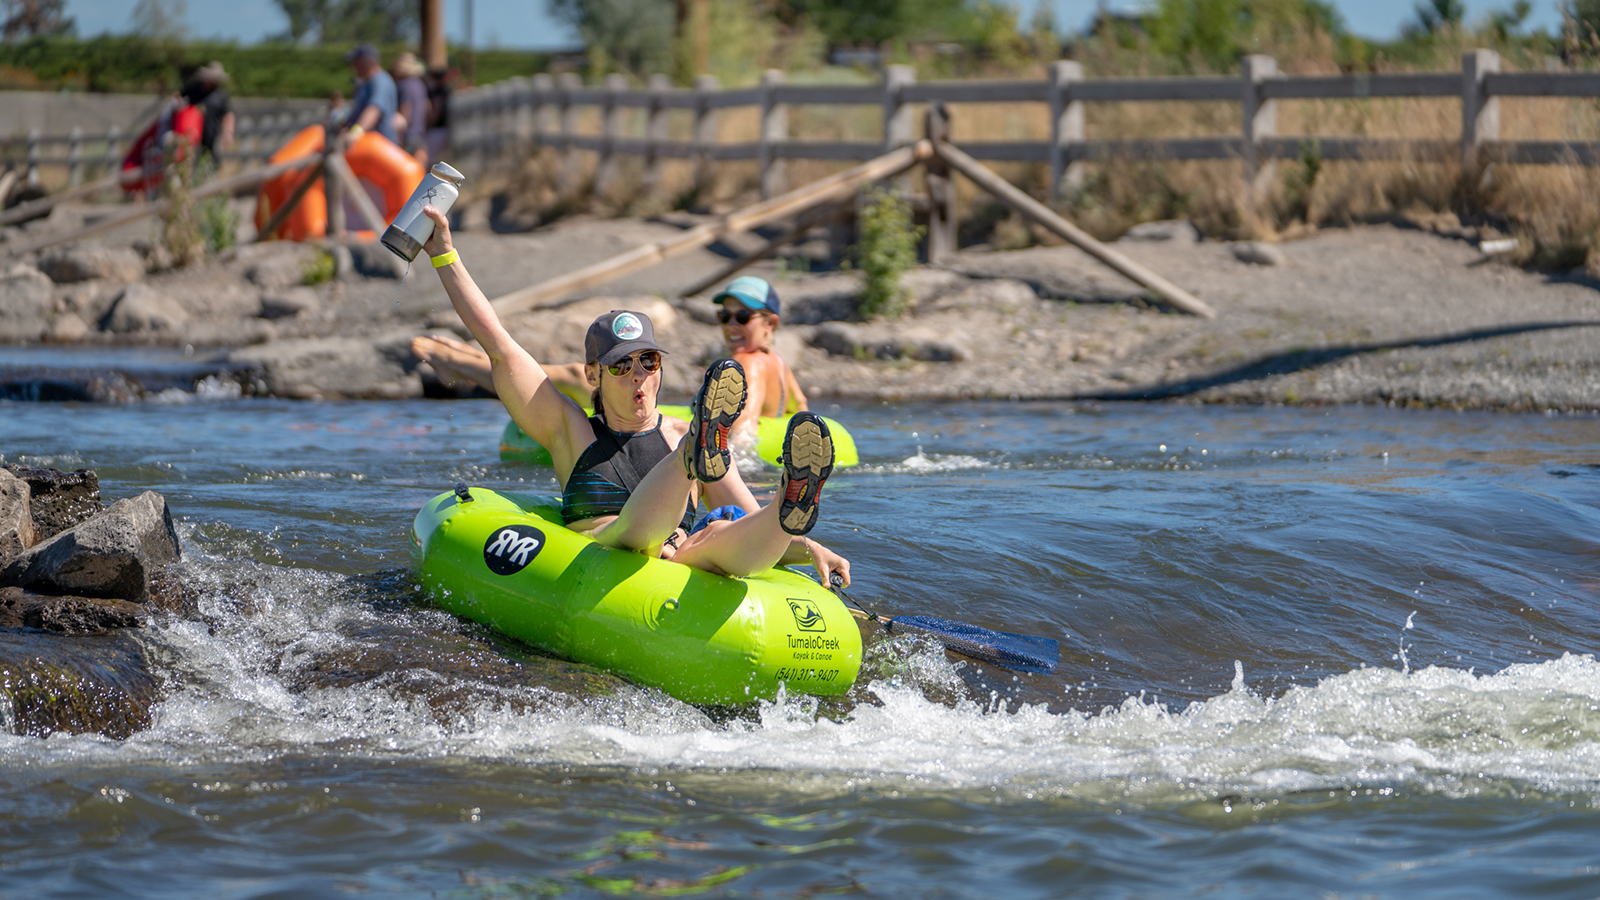 Floating on the Deschutes River in Bend, Oregon